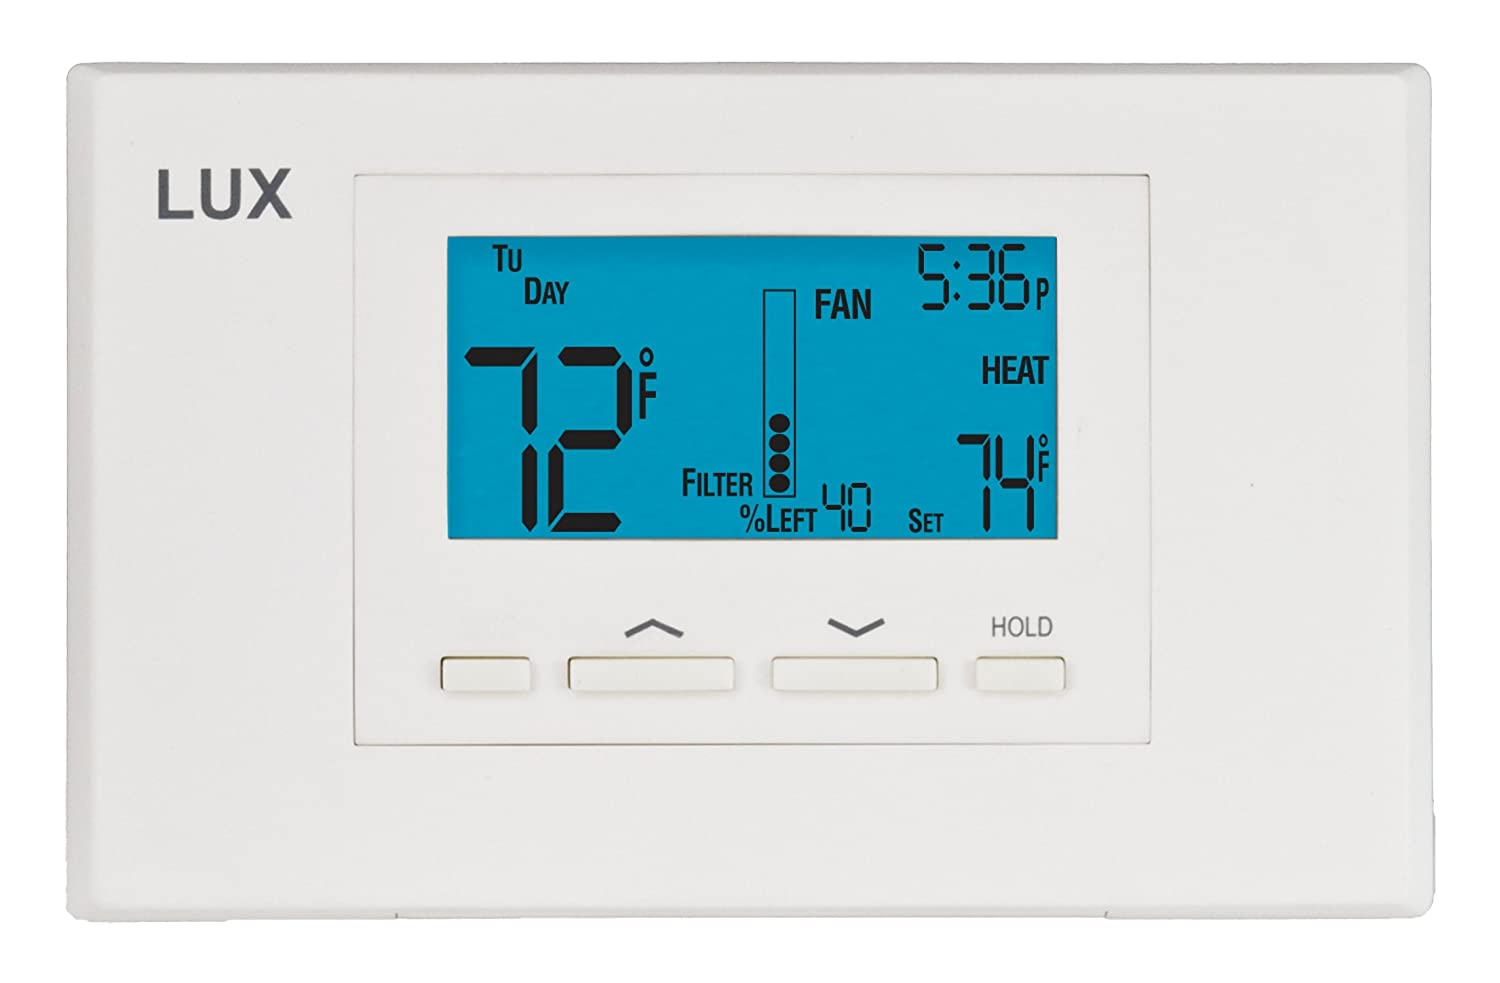 lux 1500 thermostat wiring diagram lux 500 heat wiring